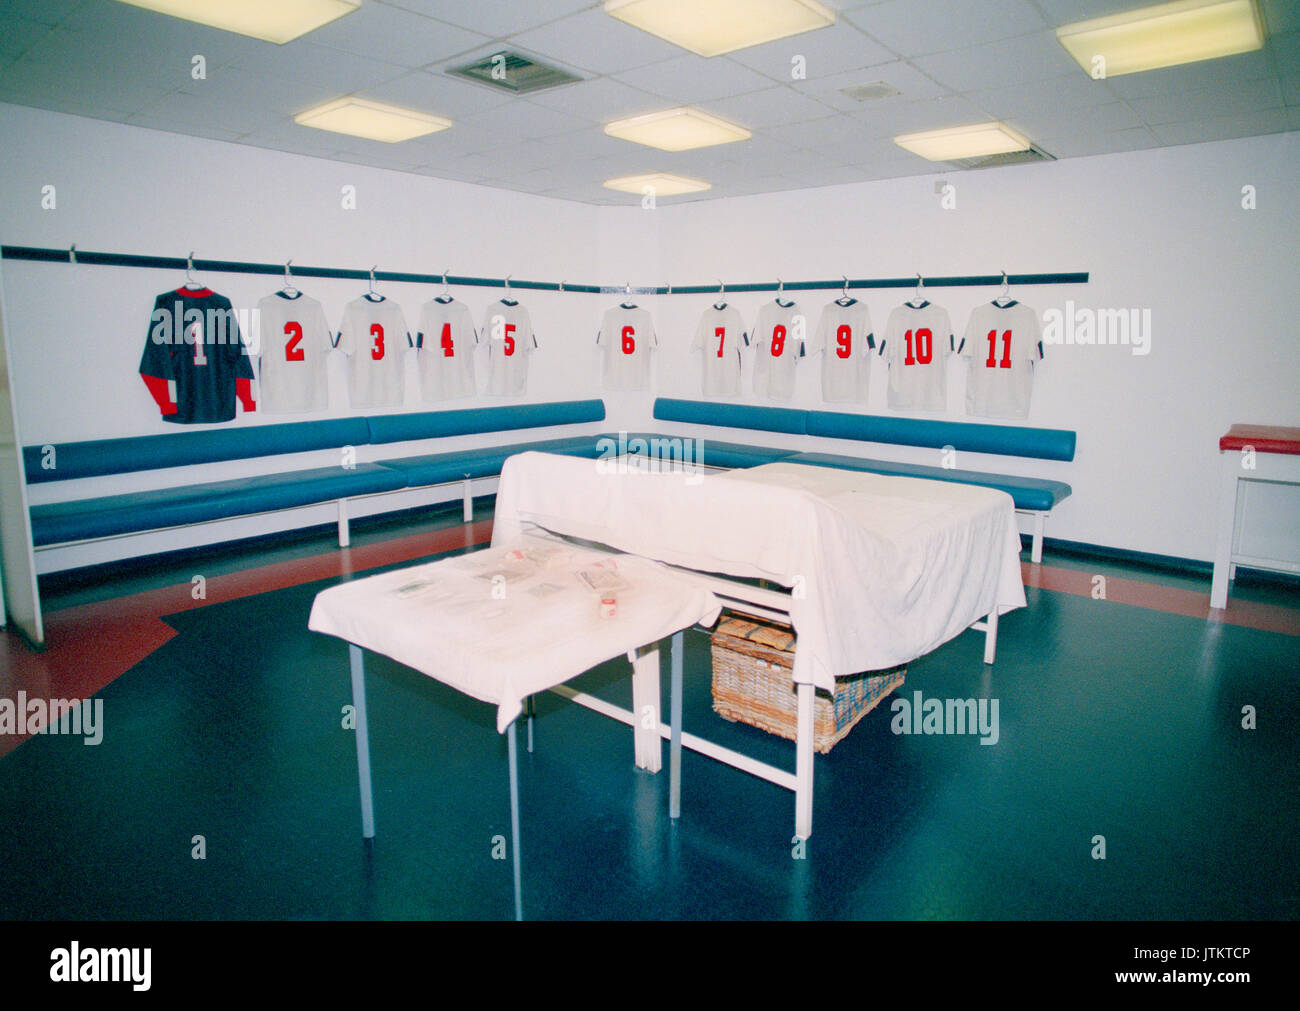 Rare Stock Photos Of The Dressing Rooms Inside The Old Wembley Stadium  (Twin Towers) Taken On A Private Tour 19th March 1999.